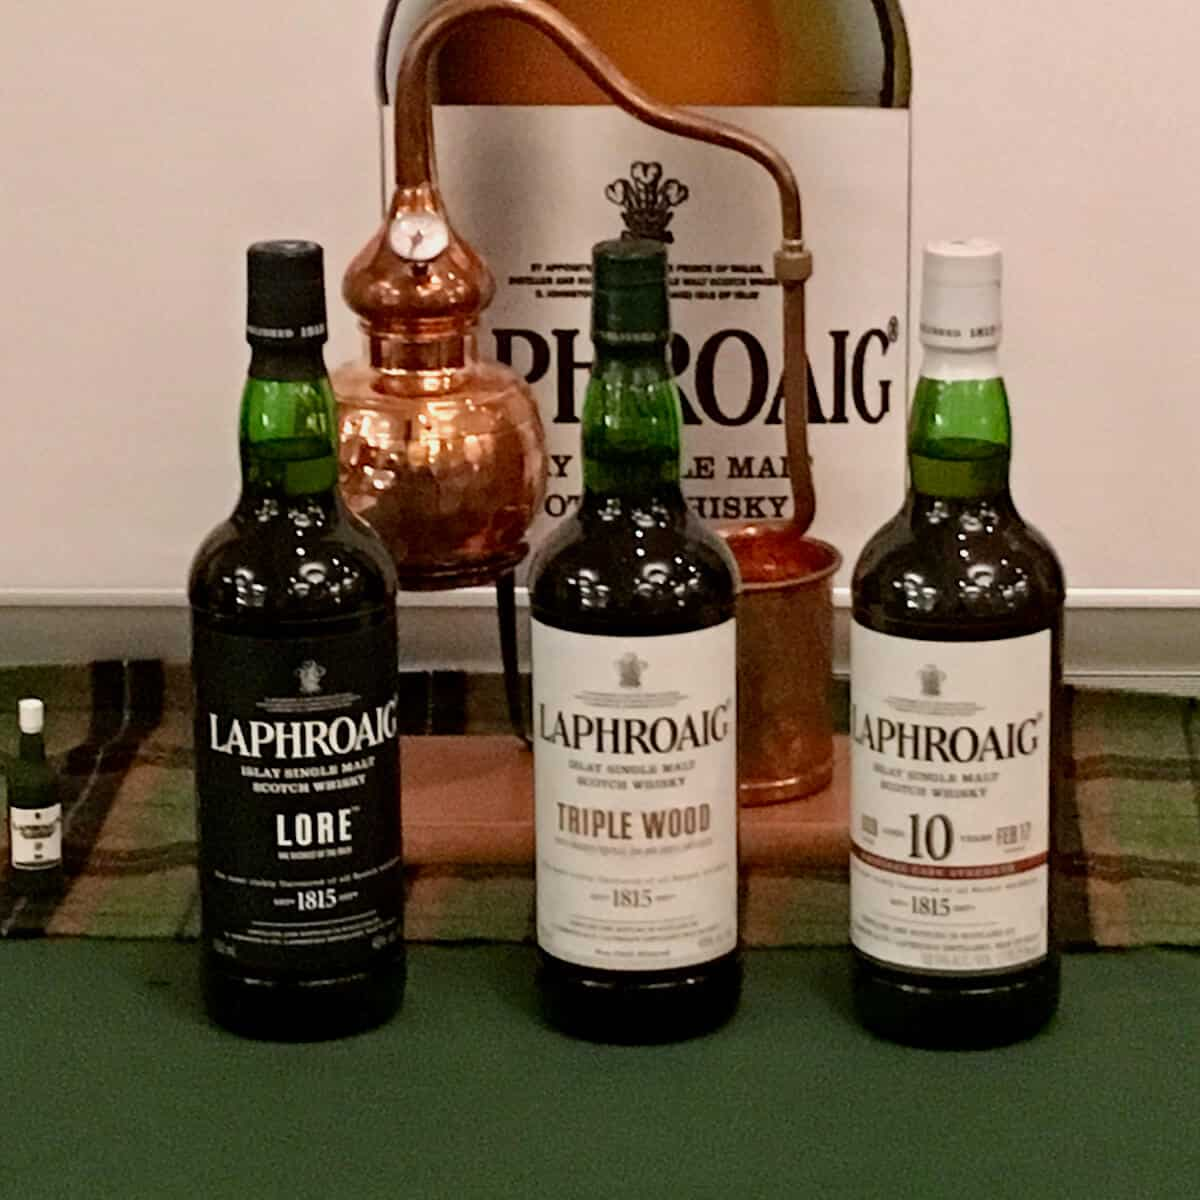 Laphroaig lineup in bottles with model of a pot still.